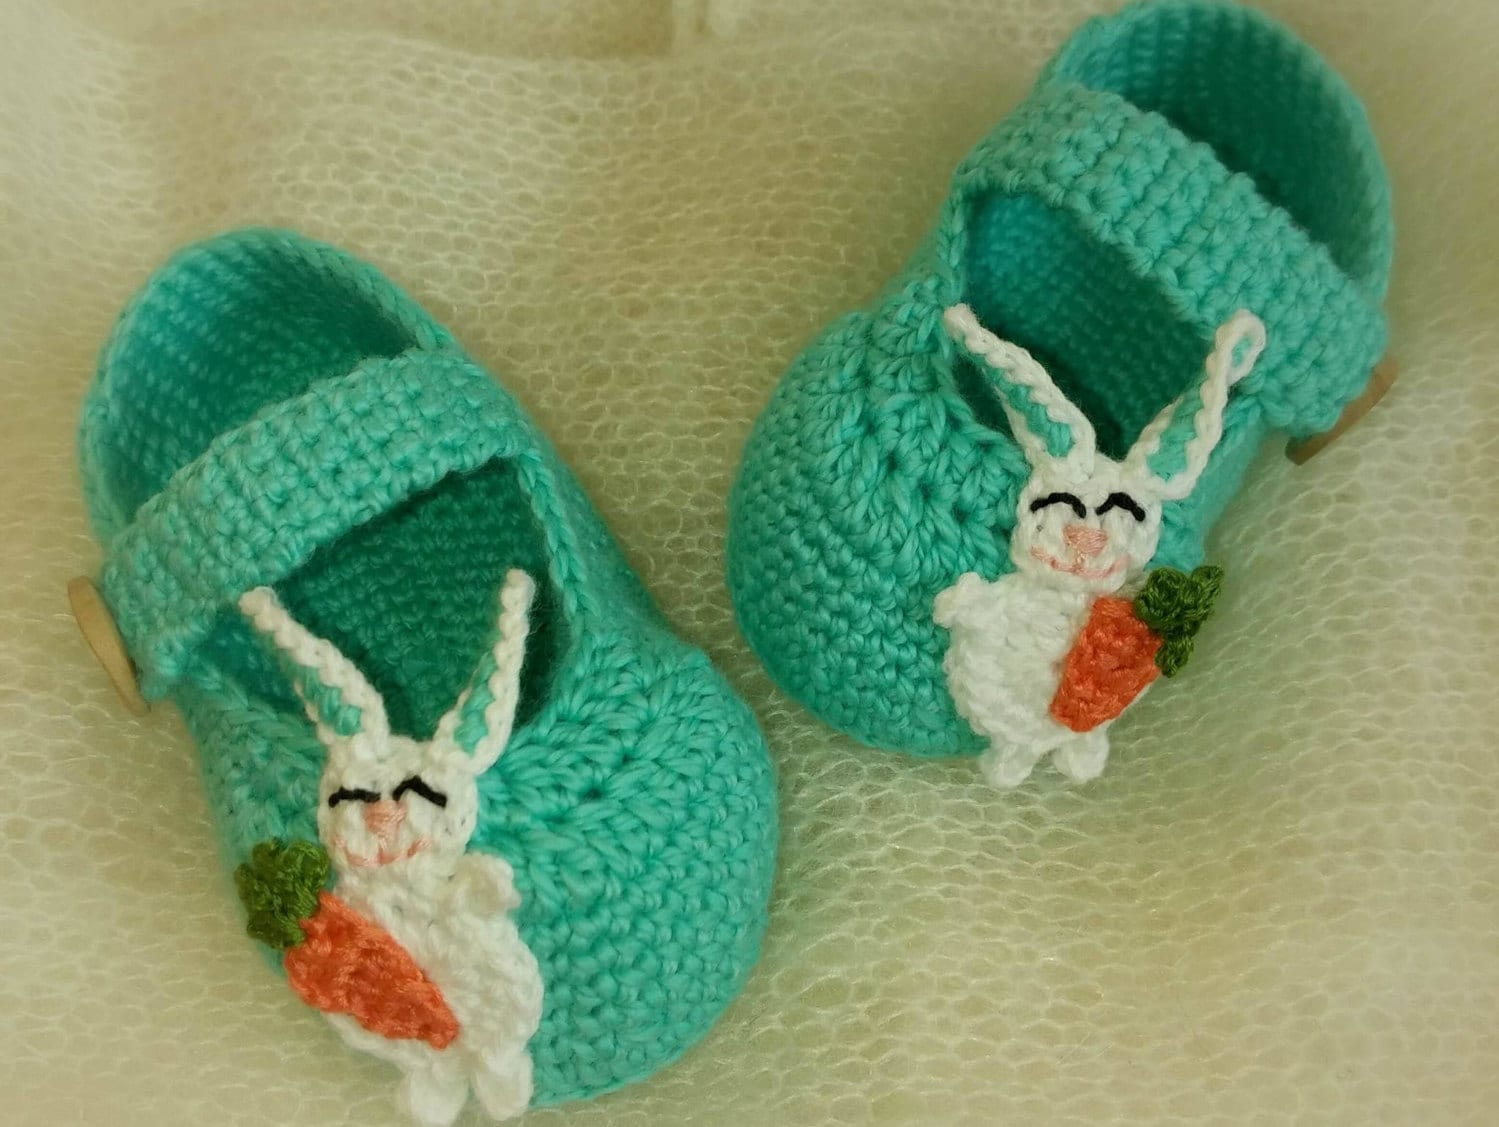 Crochet Bunny Baby Booties Pattern : Crochet baby booties / Crochet bunny slippers / Baby booties